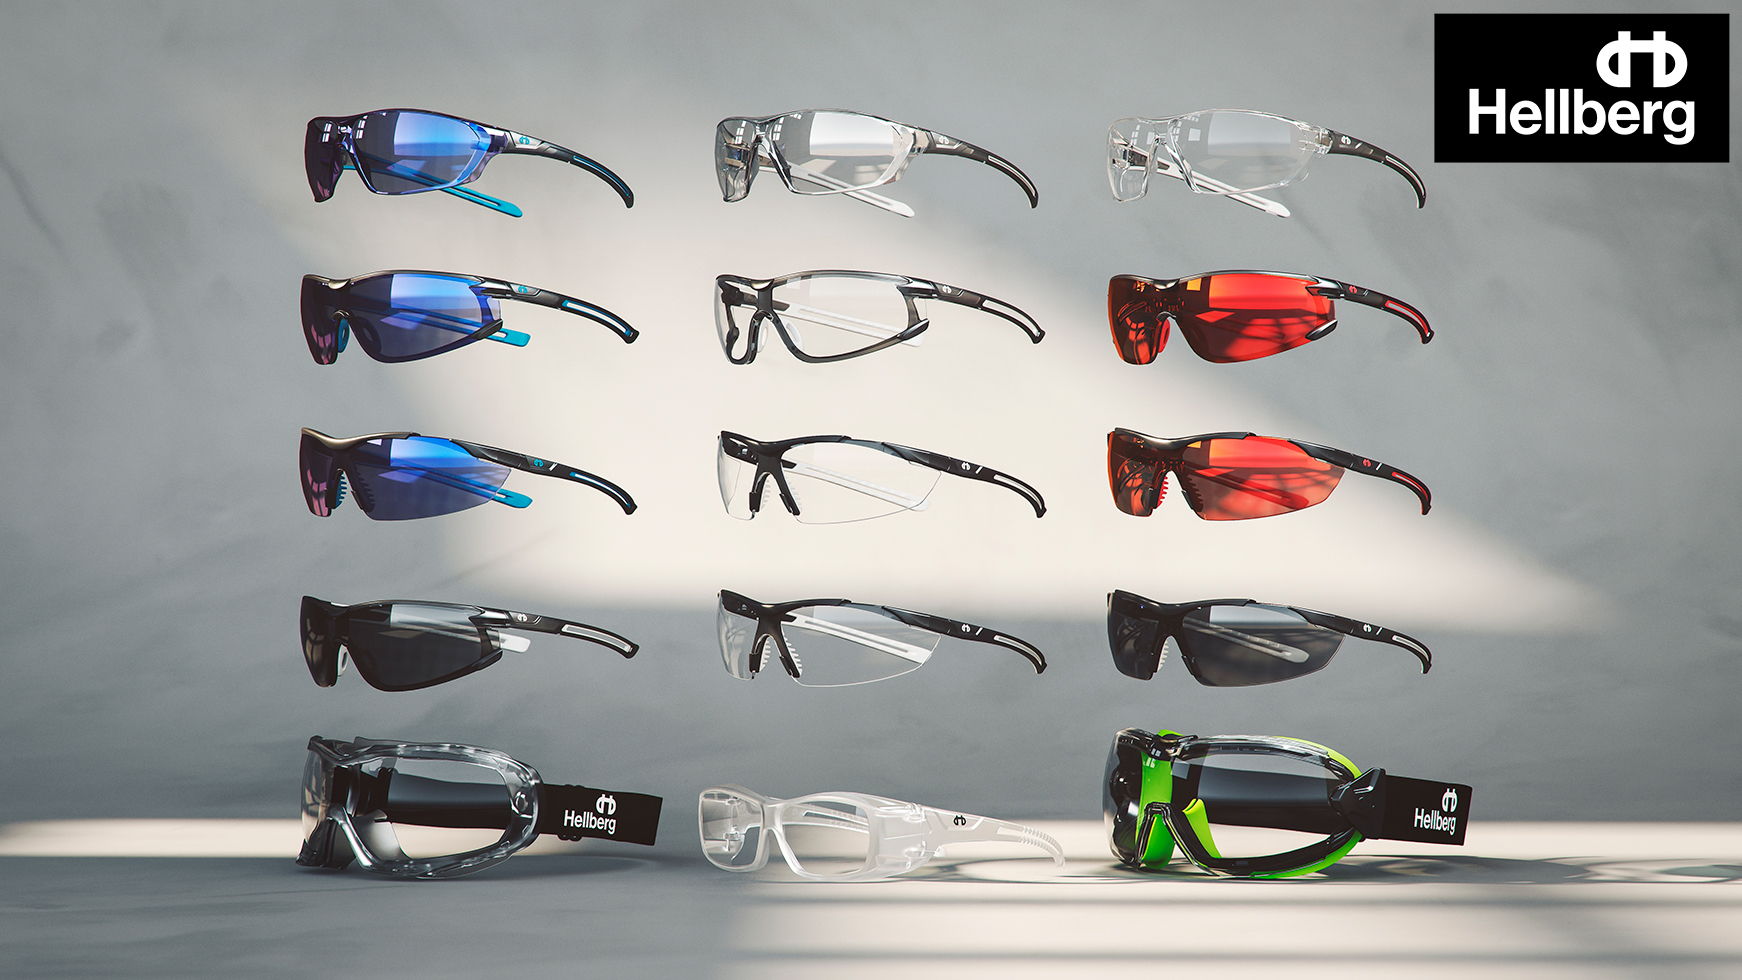 Hellberg launch new safety eyewear